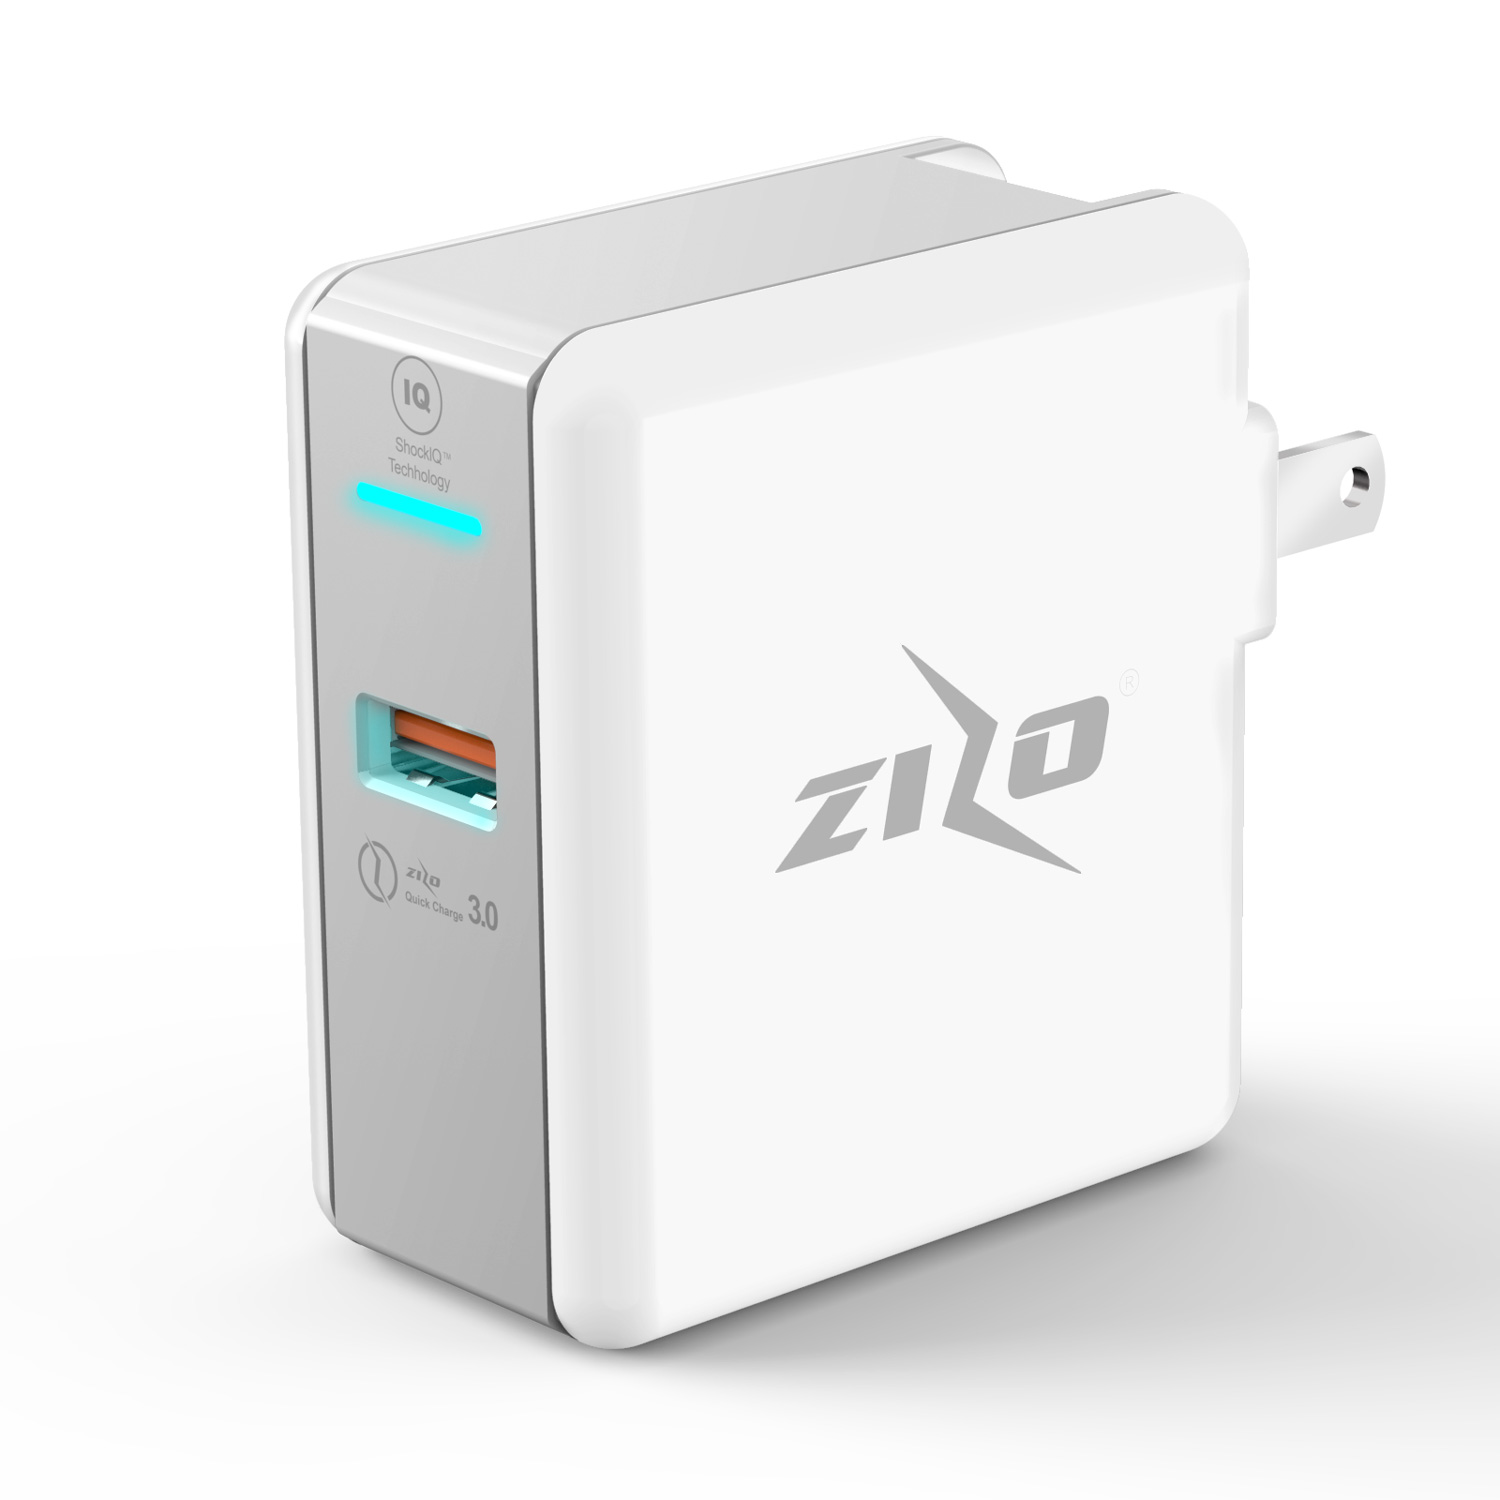 ZIZOCHARGE USB CHARGER